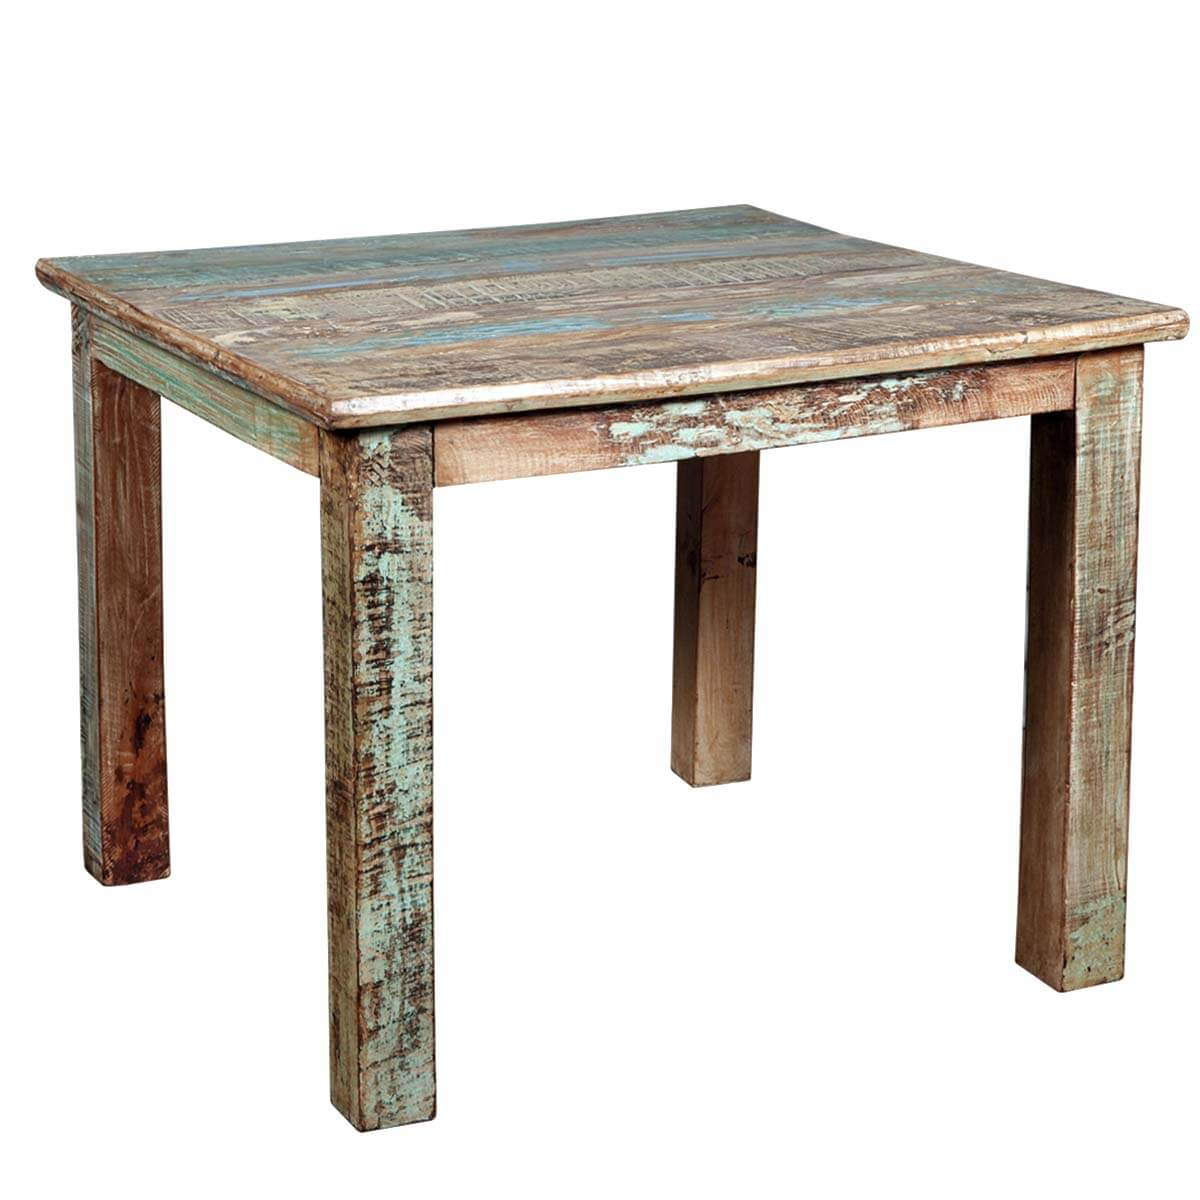 Indoor Rustic Reclaimed Wood Distressed Small Kitchen Table Small Kitchen Table Walmart Small Kitchen Table 2 Chairs houzz-03 Small Kitchen Table